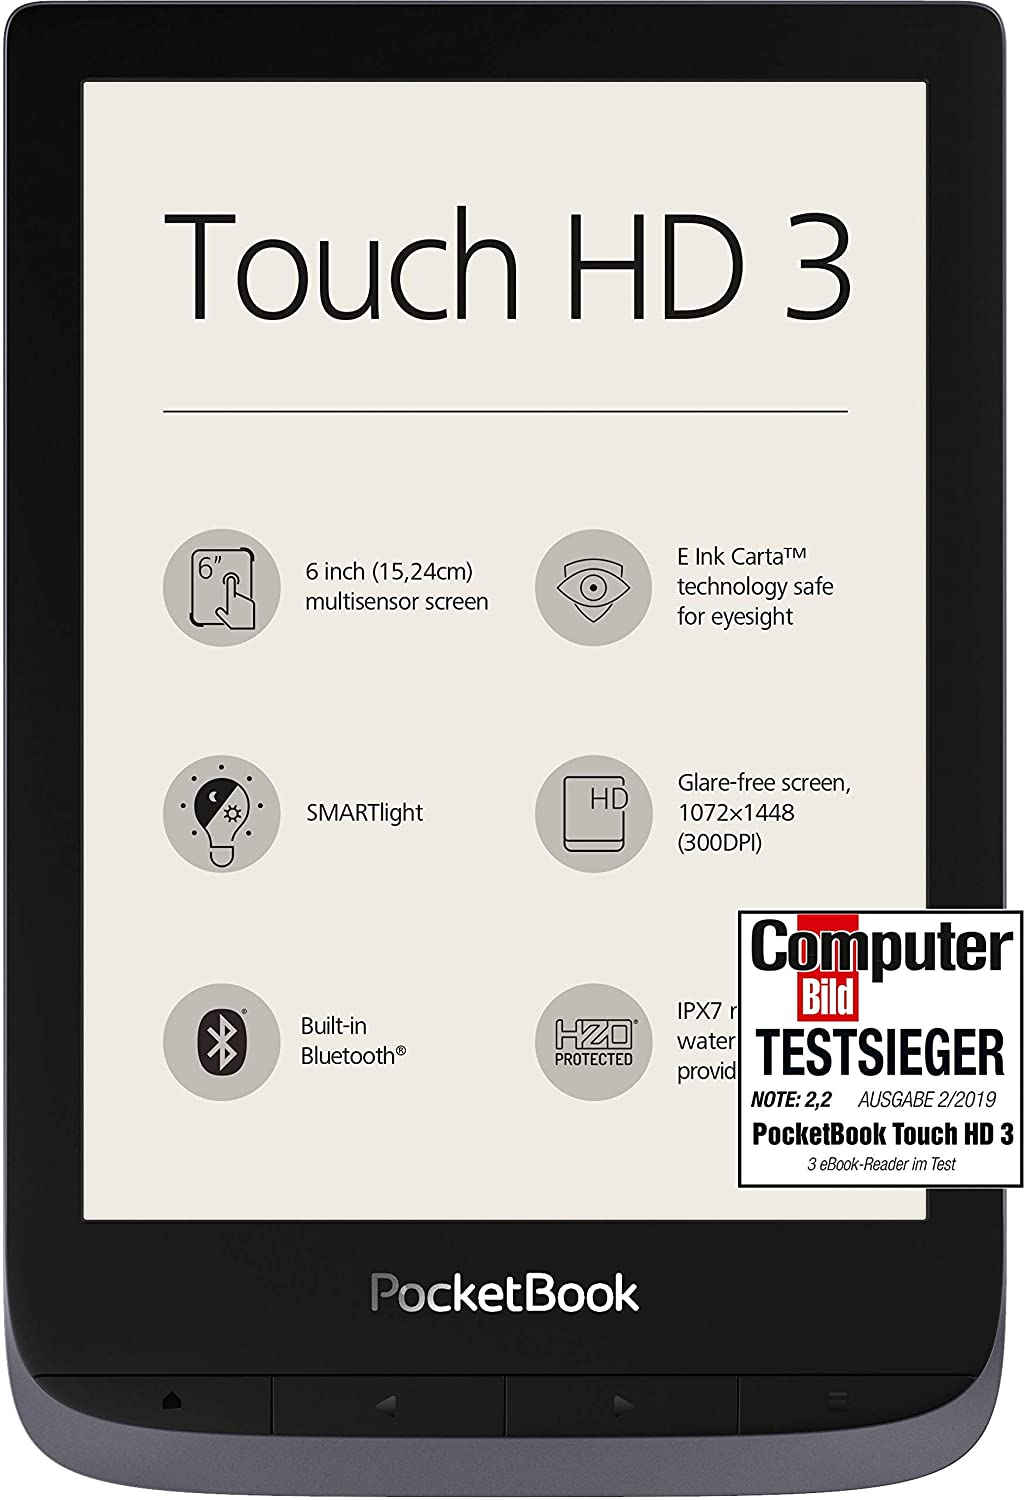 Pocket book hd touch 3